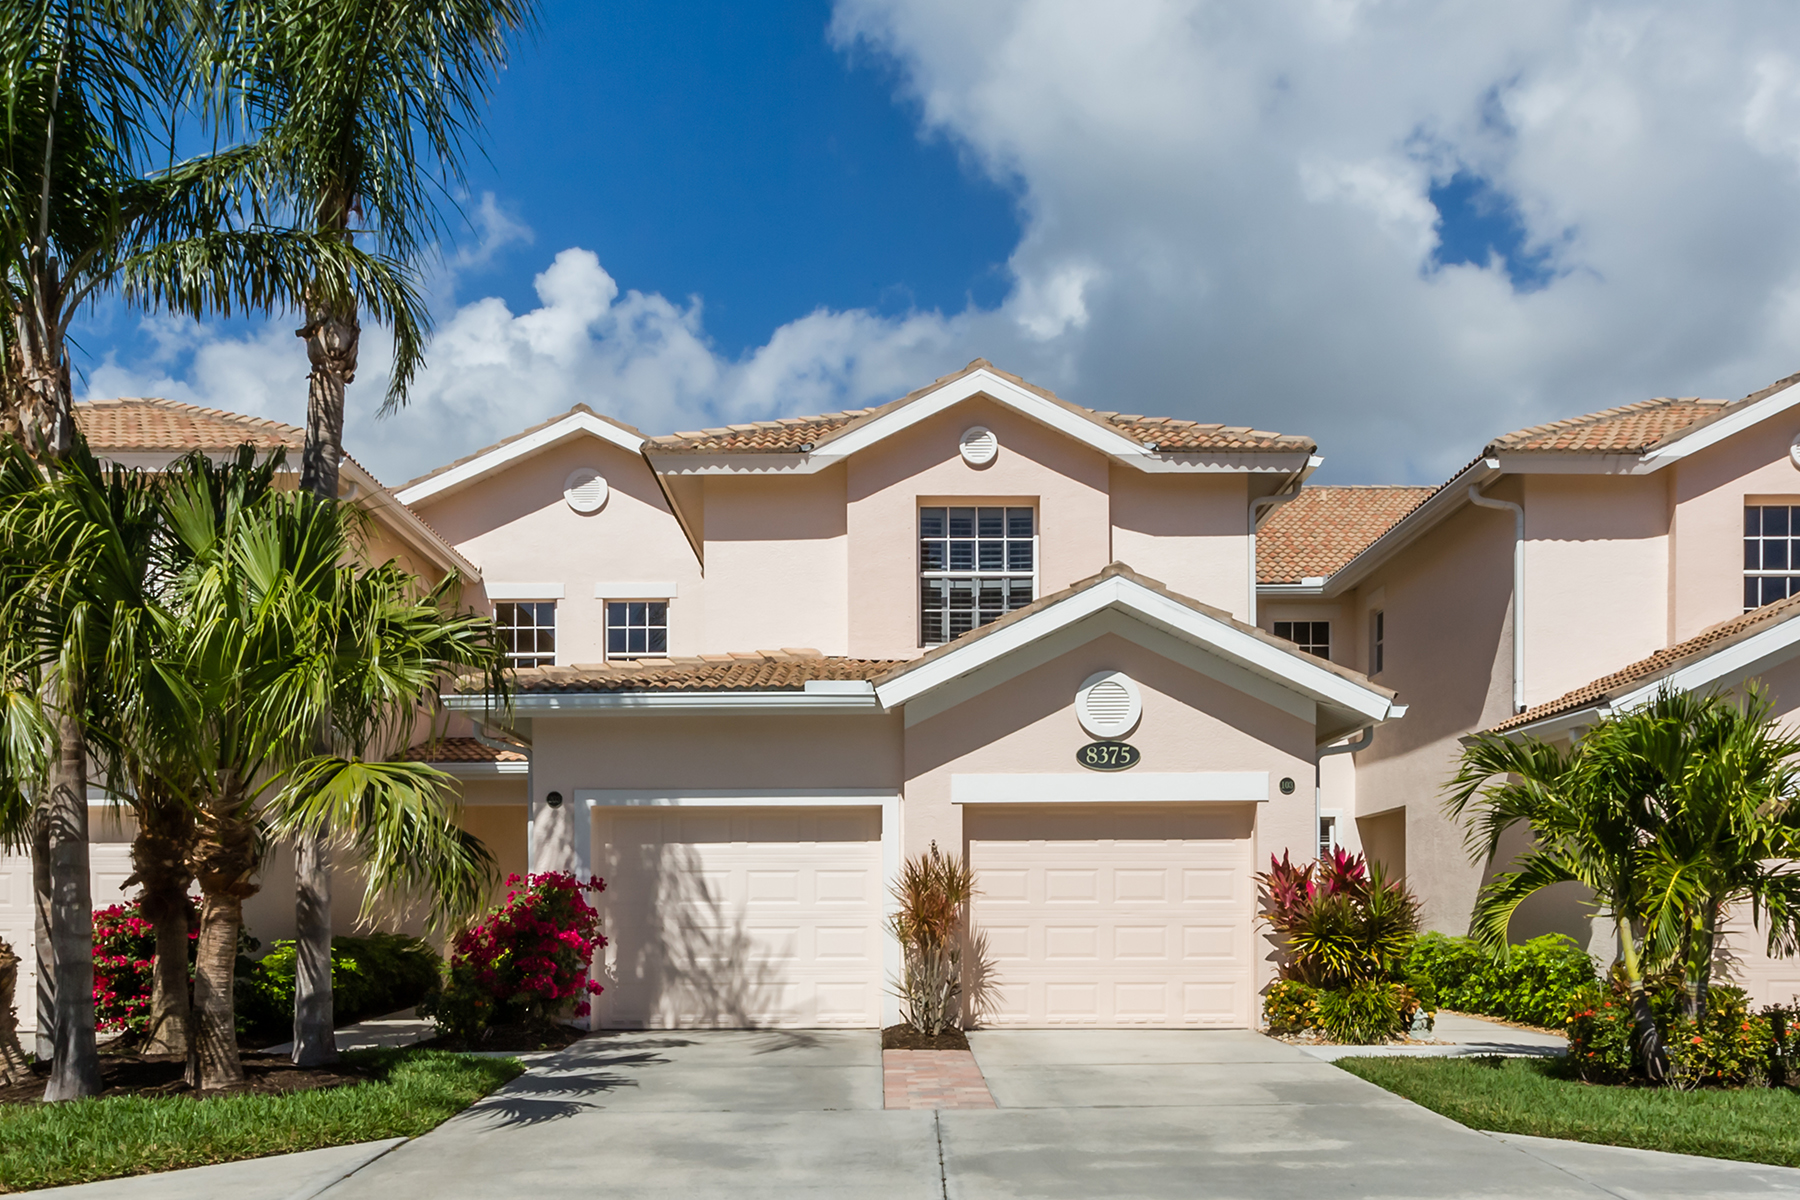 Condominium for Sale at FIDDLERS CREEK 8375 Whisper Trace Ln M-203, Naples, Florida, 34114 United States